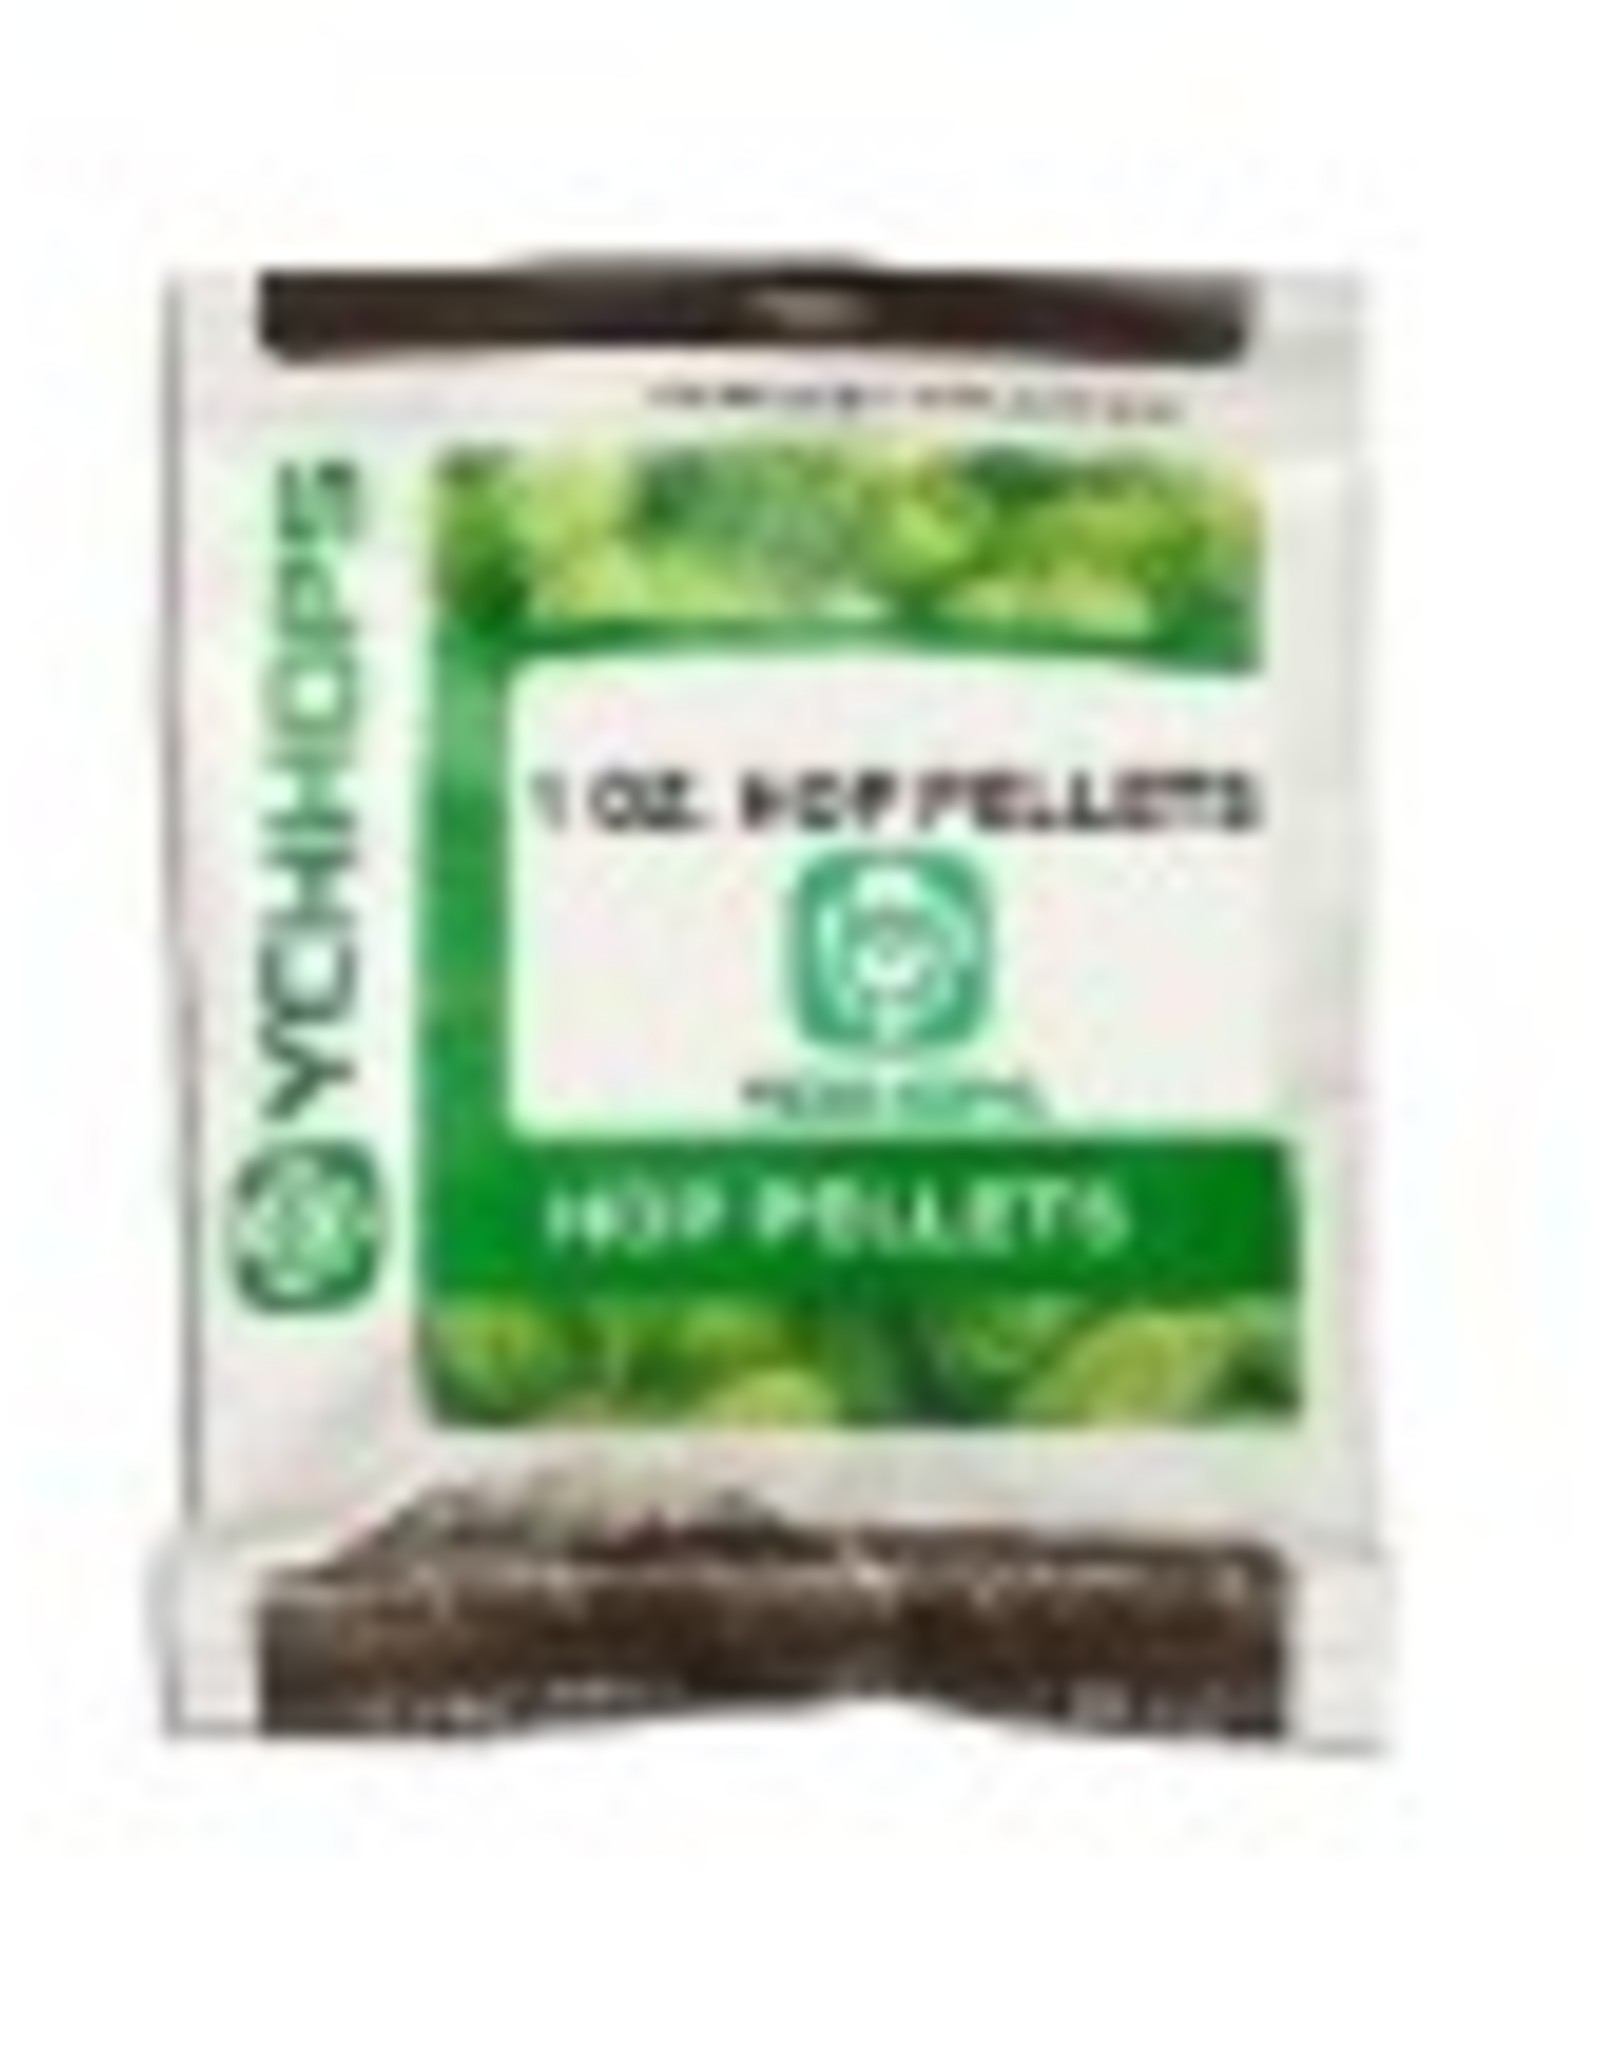 FALCONER'S FLIGHT 7 C'S HOP PELLETS